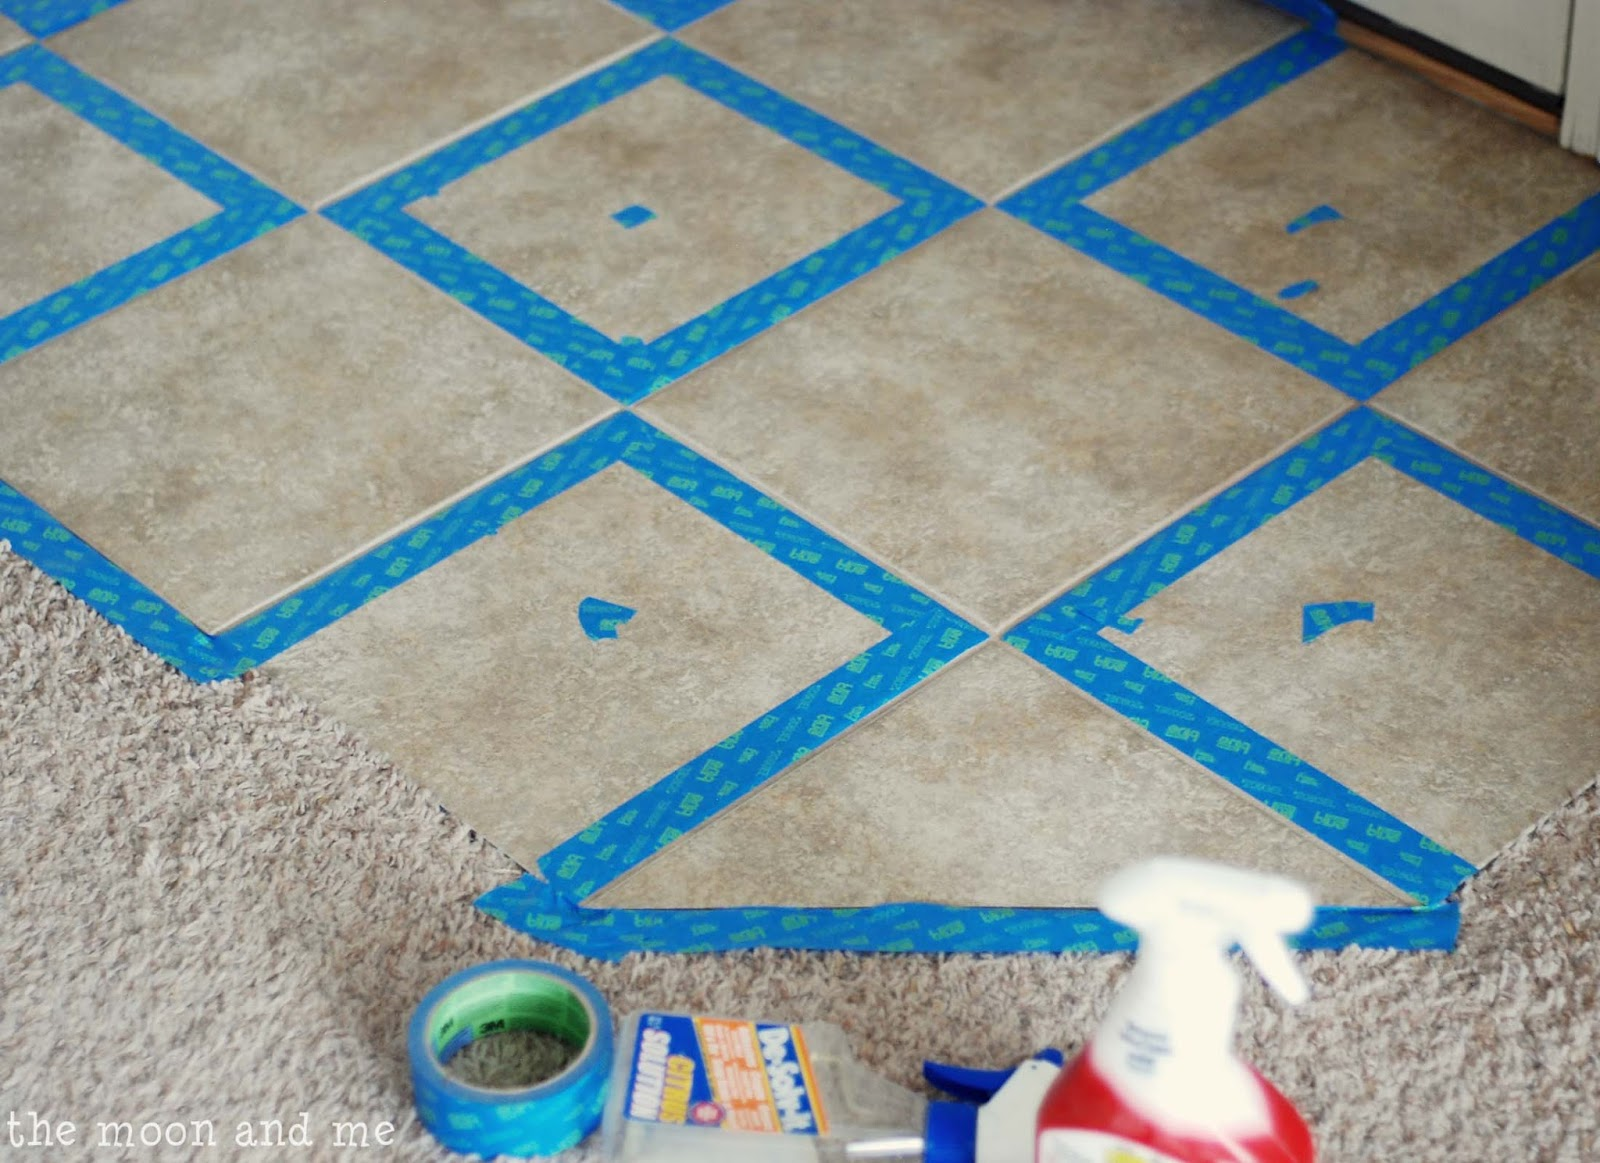 The moon and me painting a tile floor tips and grumbles friday august 16 2013 dailygadgetfo Image collections